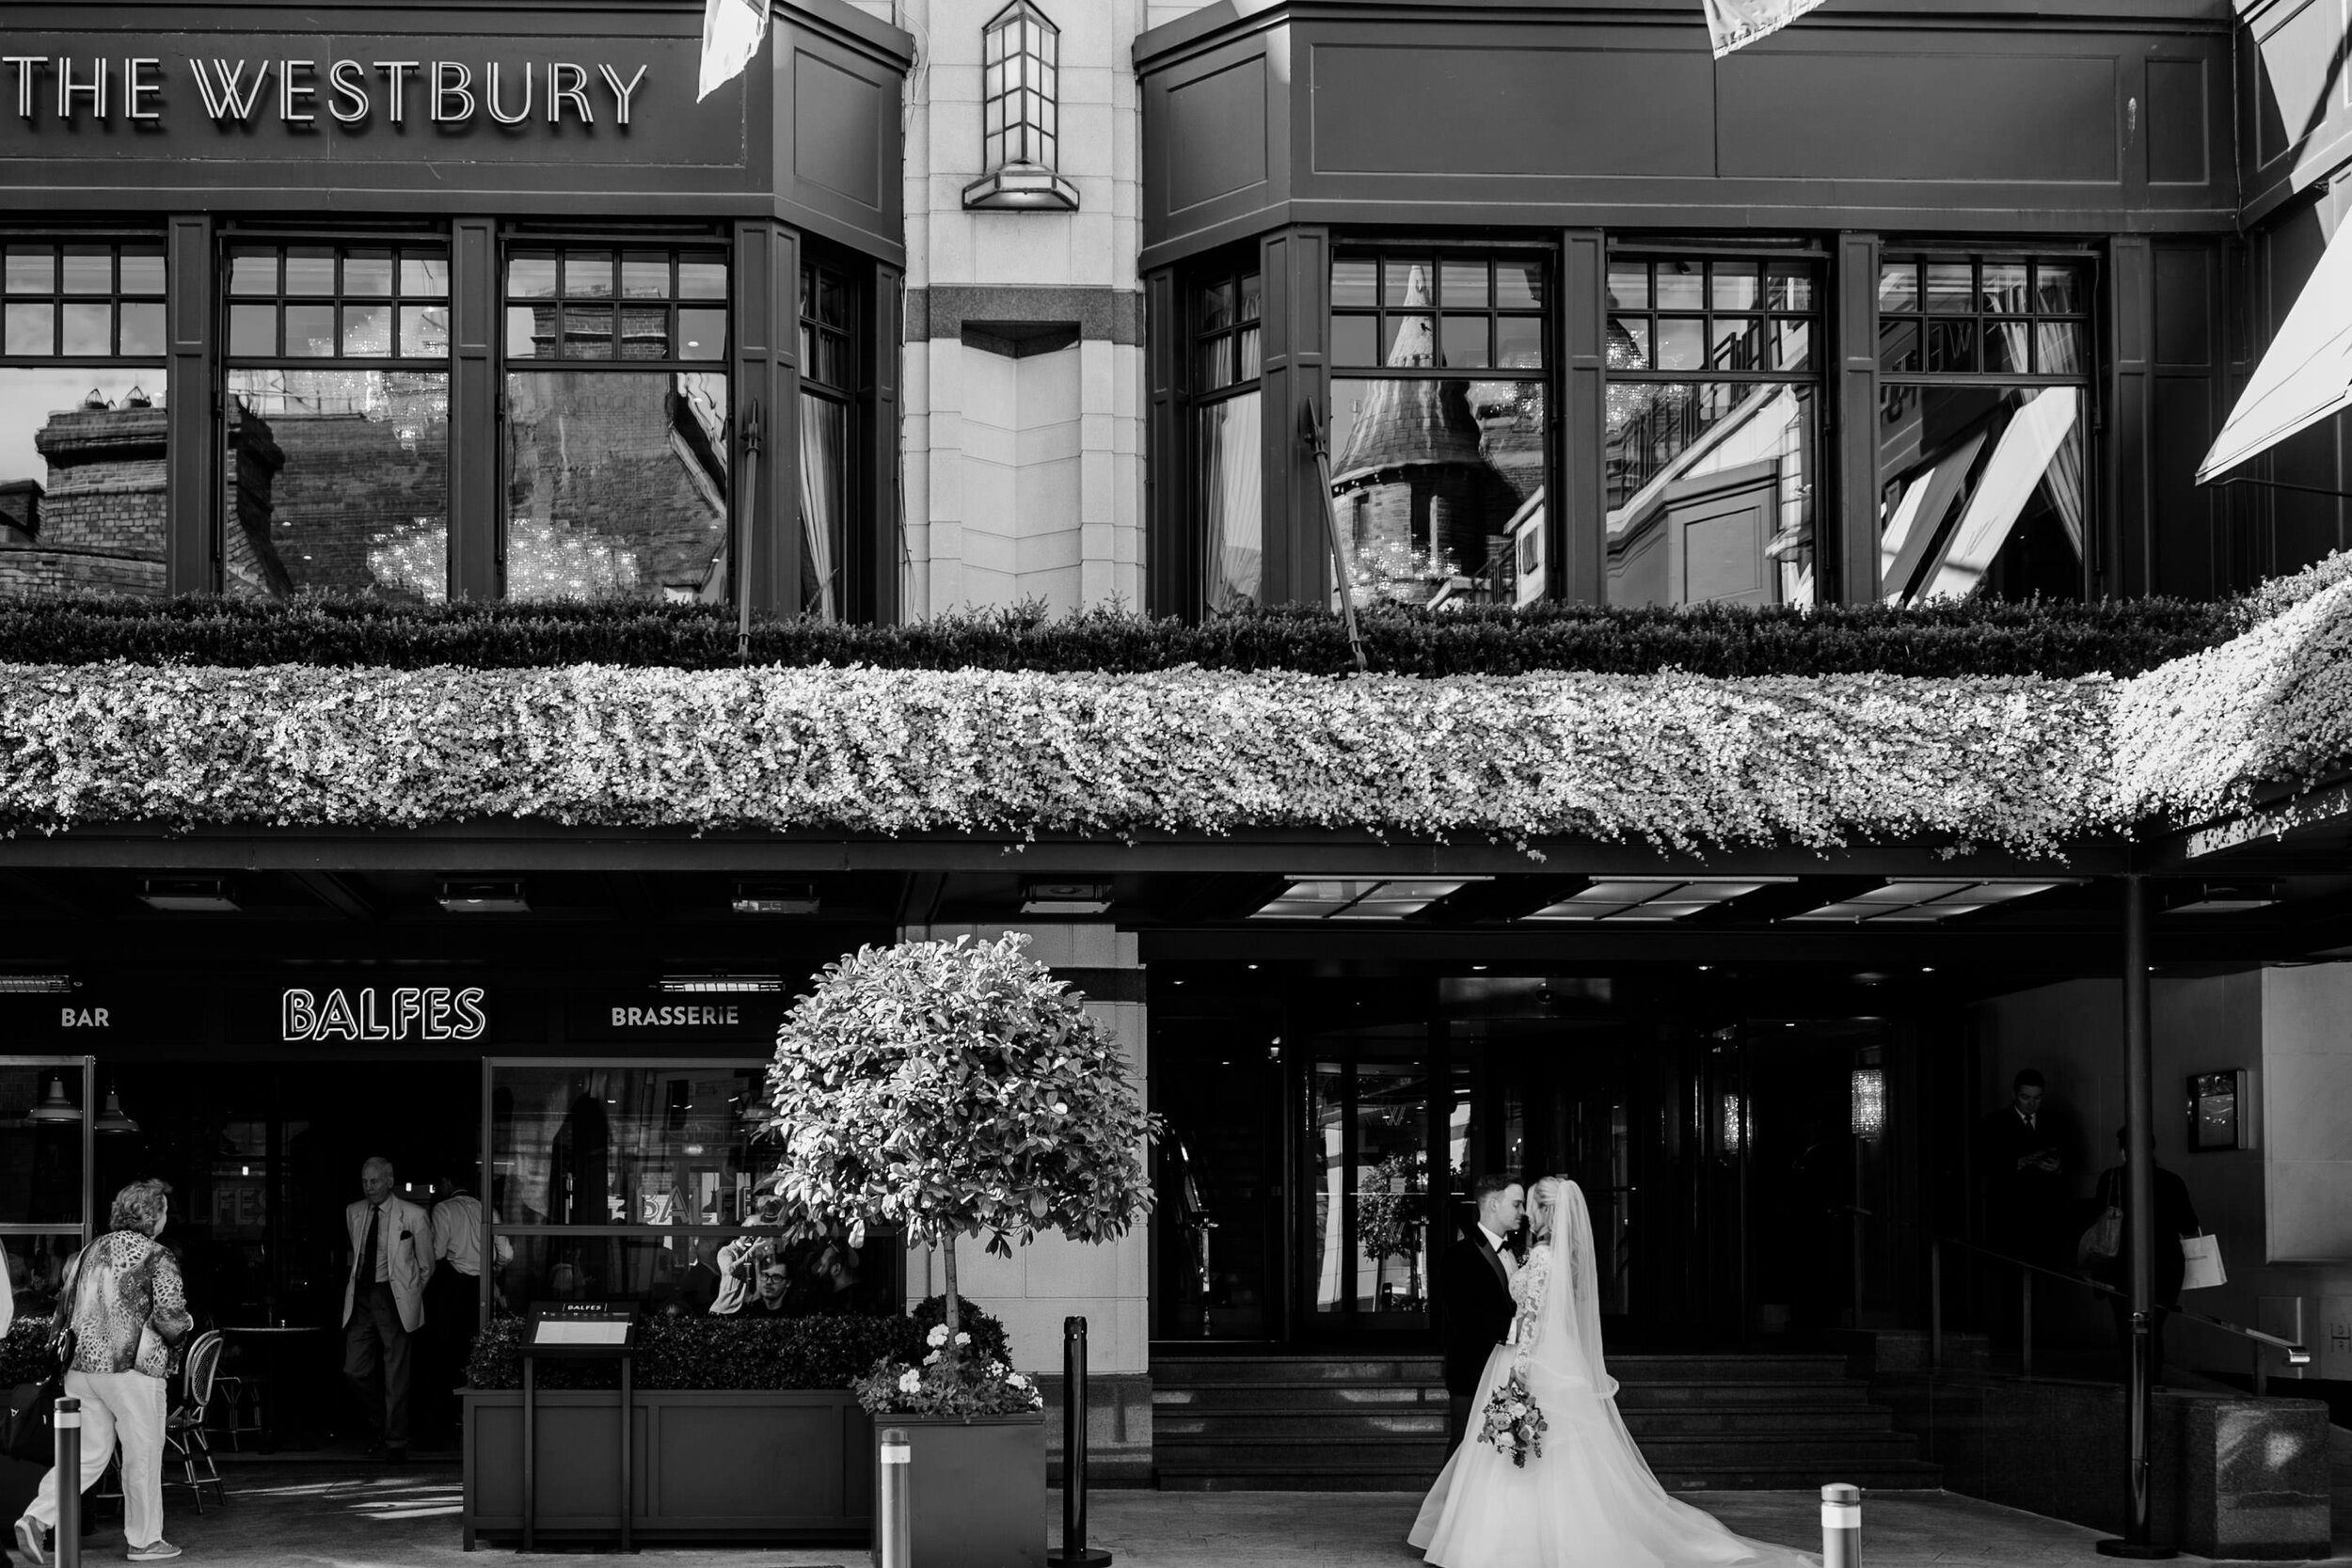 c&s_the_westbury_wedding_photographer_livia_figueiredo_31.jpg